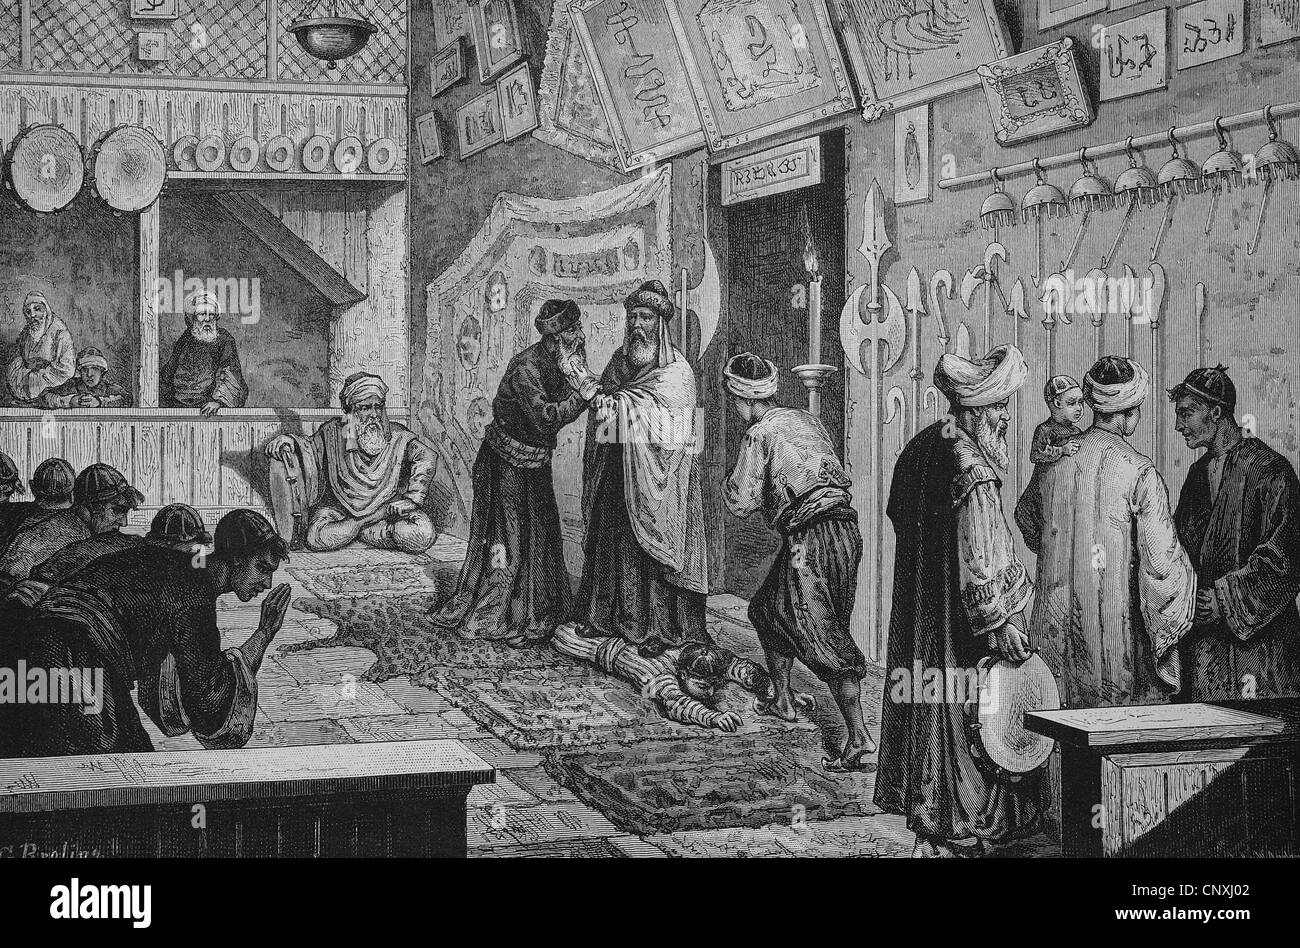 Miracle healing in the Monastery of the Howling Dervishes in Scutari, today Shkodra, Albania, historical engraving, - Stock Image